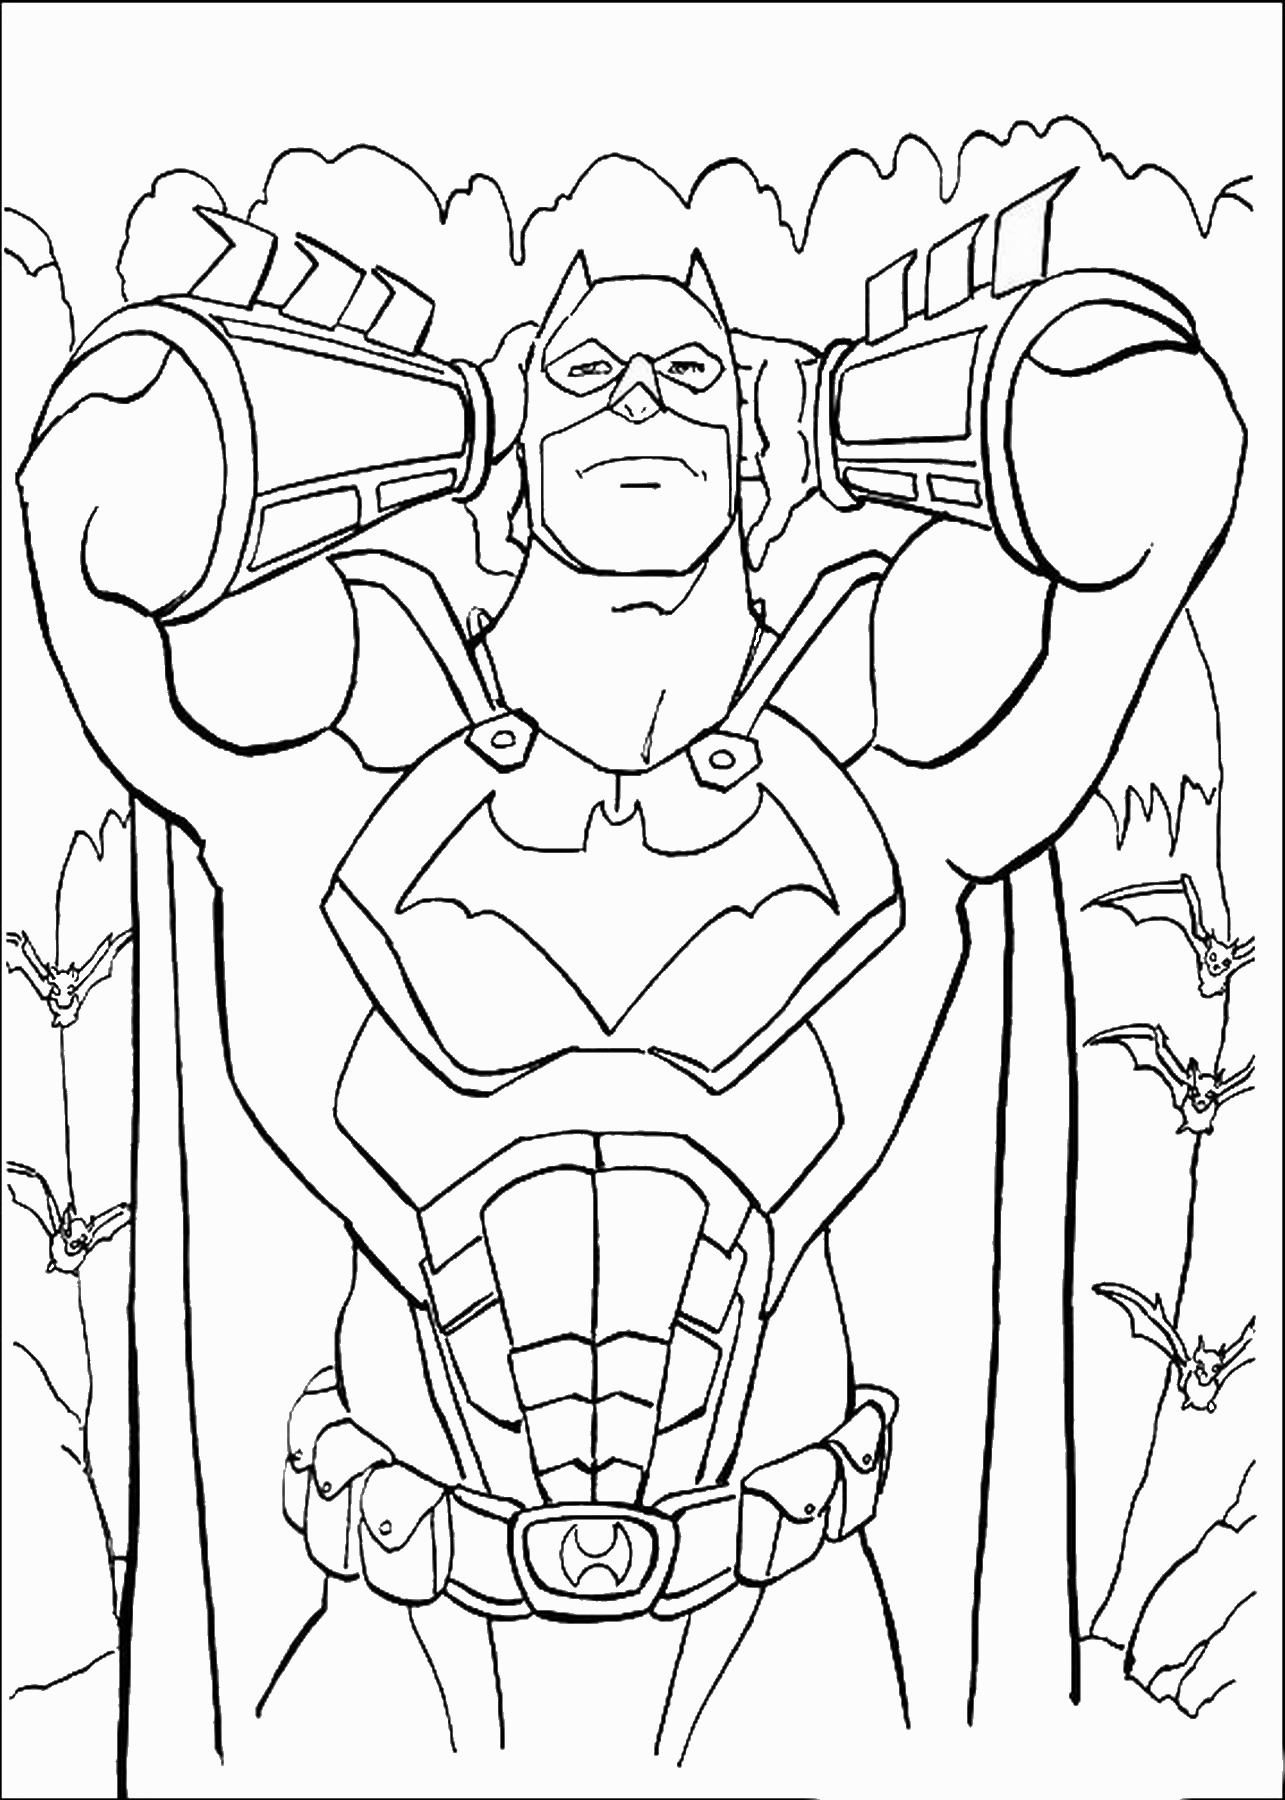 batman pictures for coloring coloring pages batman free downloadable coloring pages batman for pictures coloring